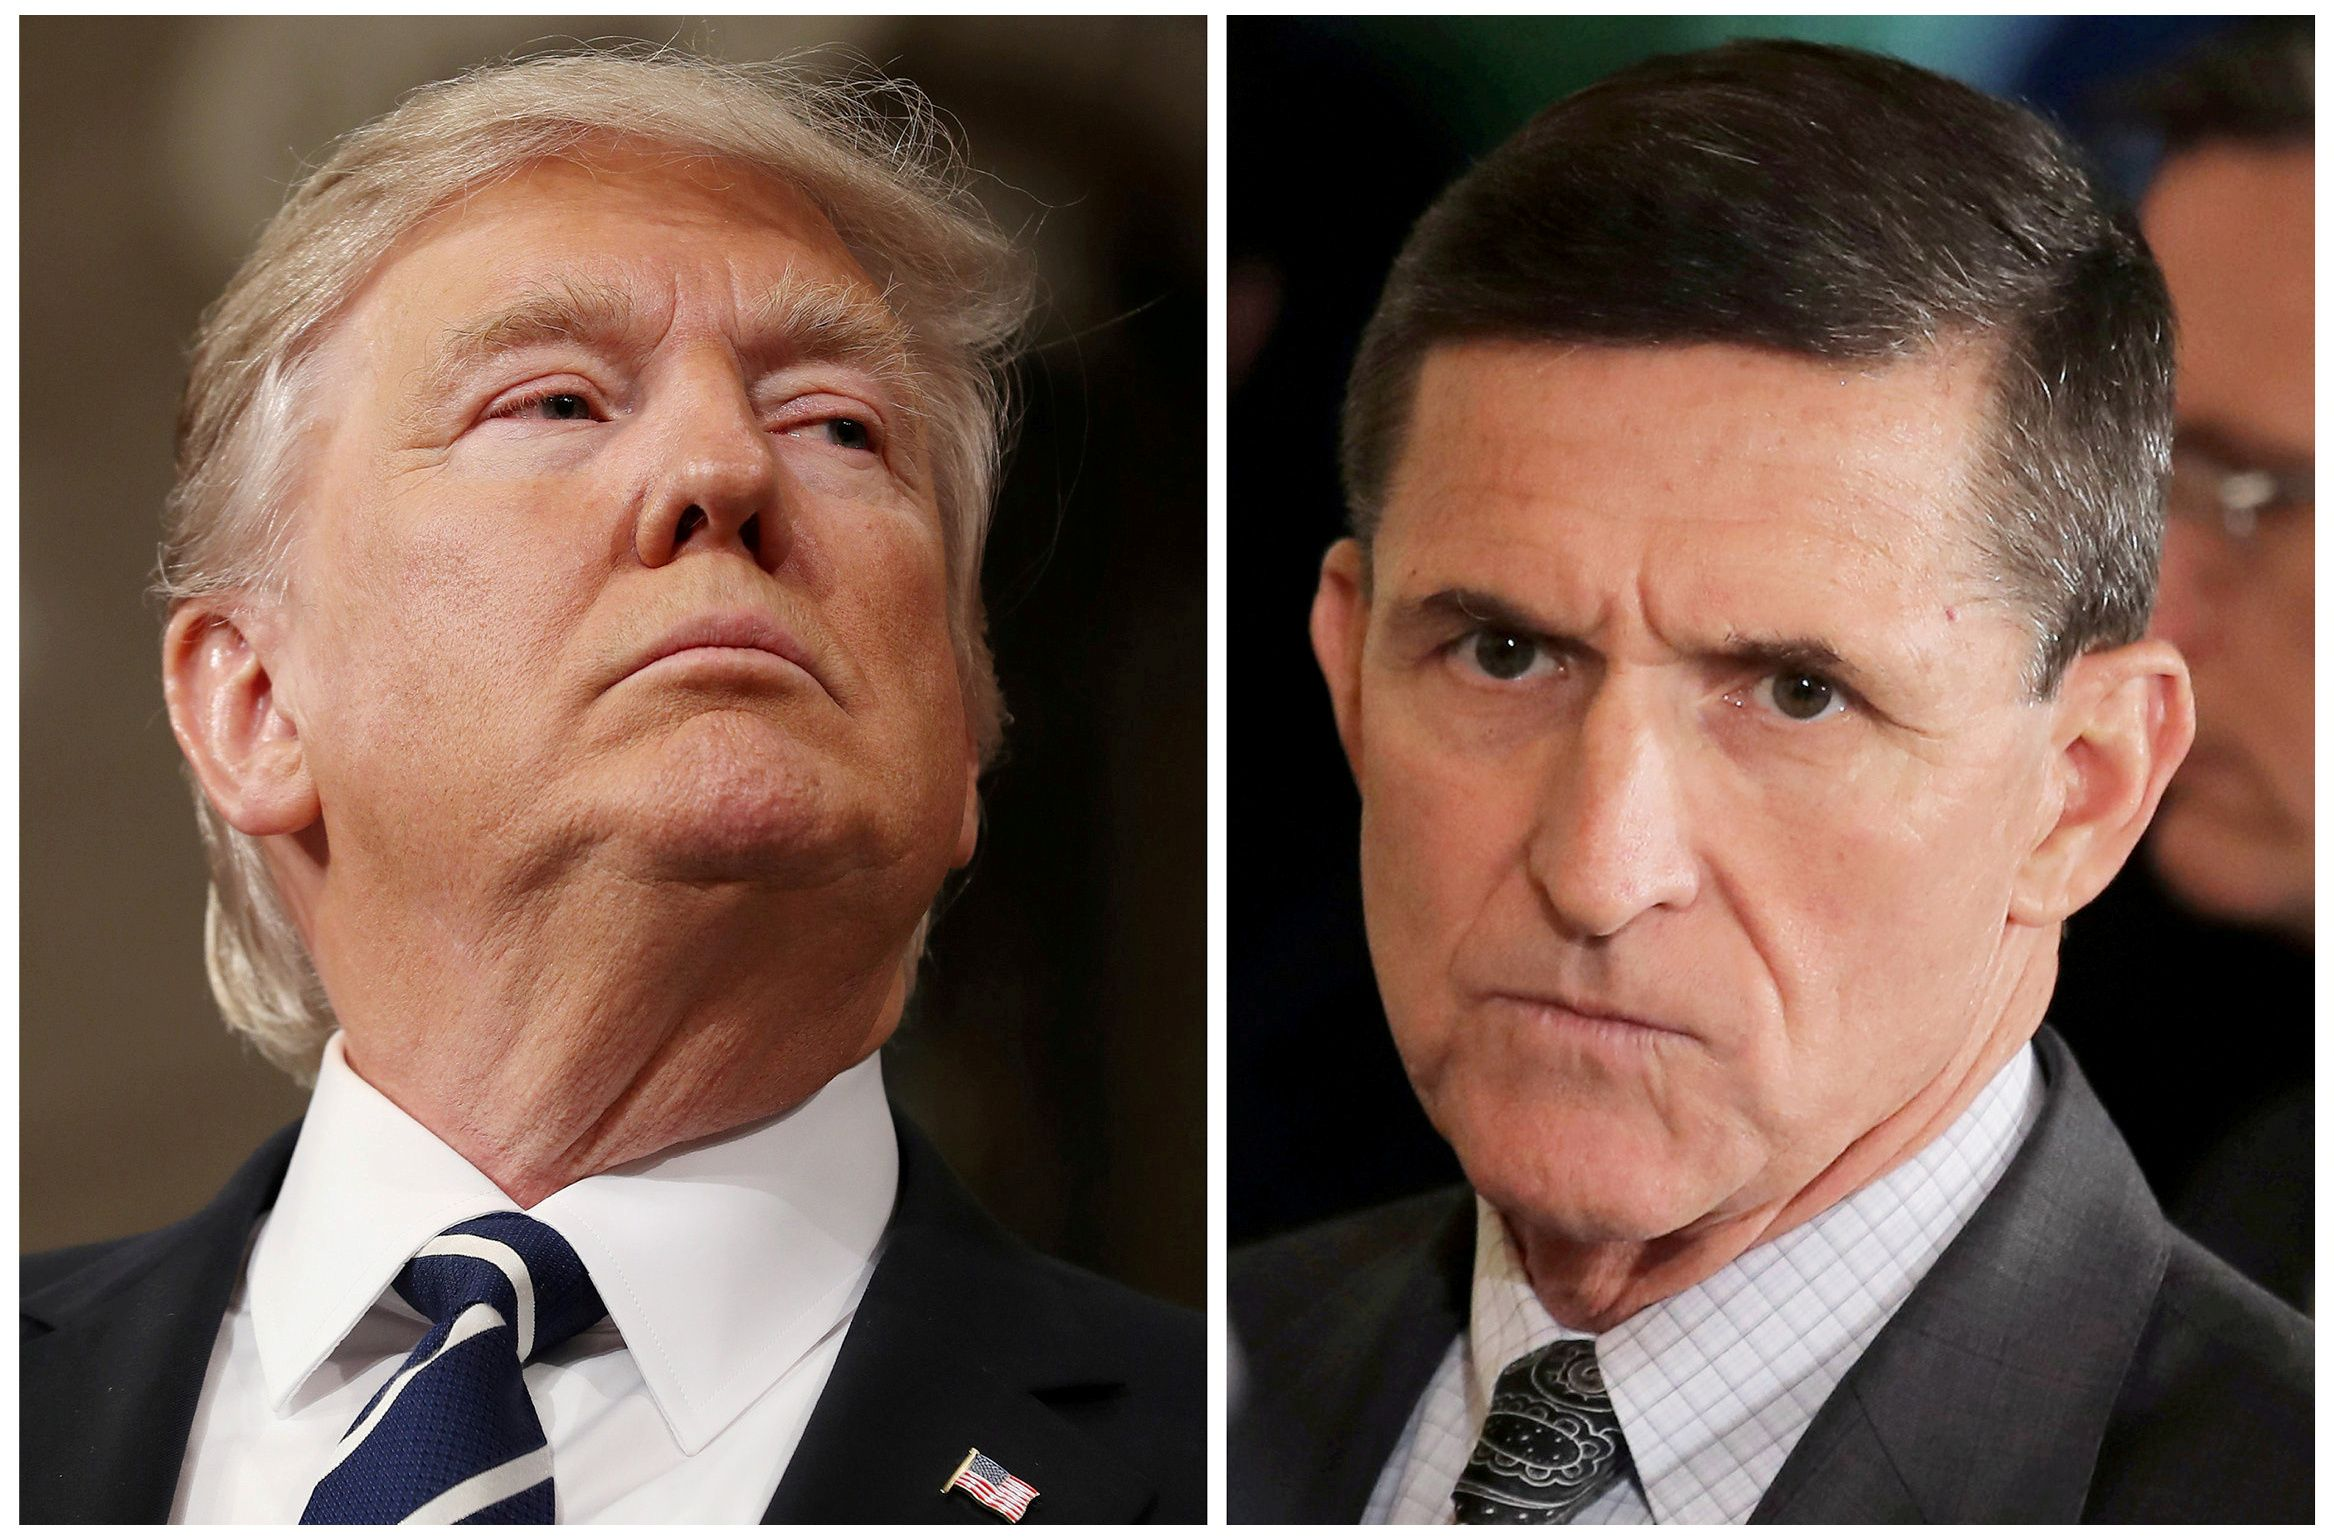 Whistleblower: Flynn was doing private Russia-related business on his phone during Trump's inauguration speech